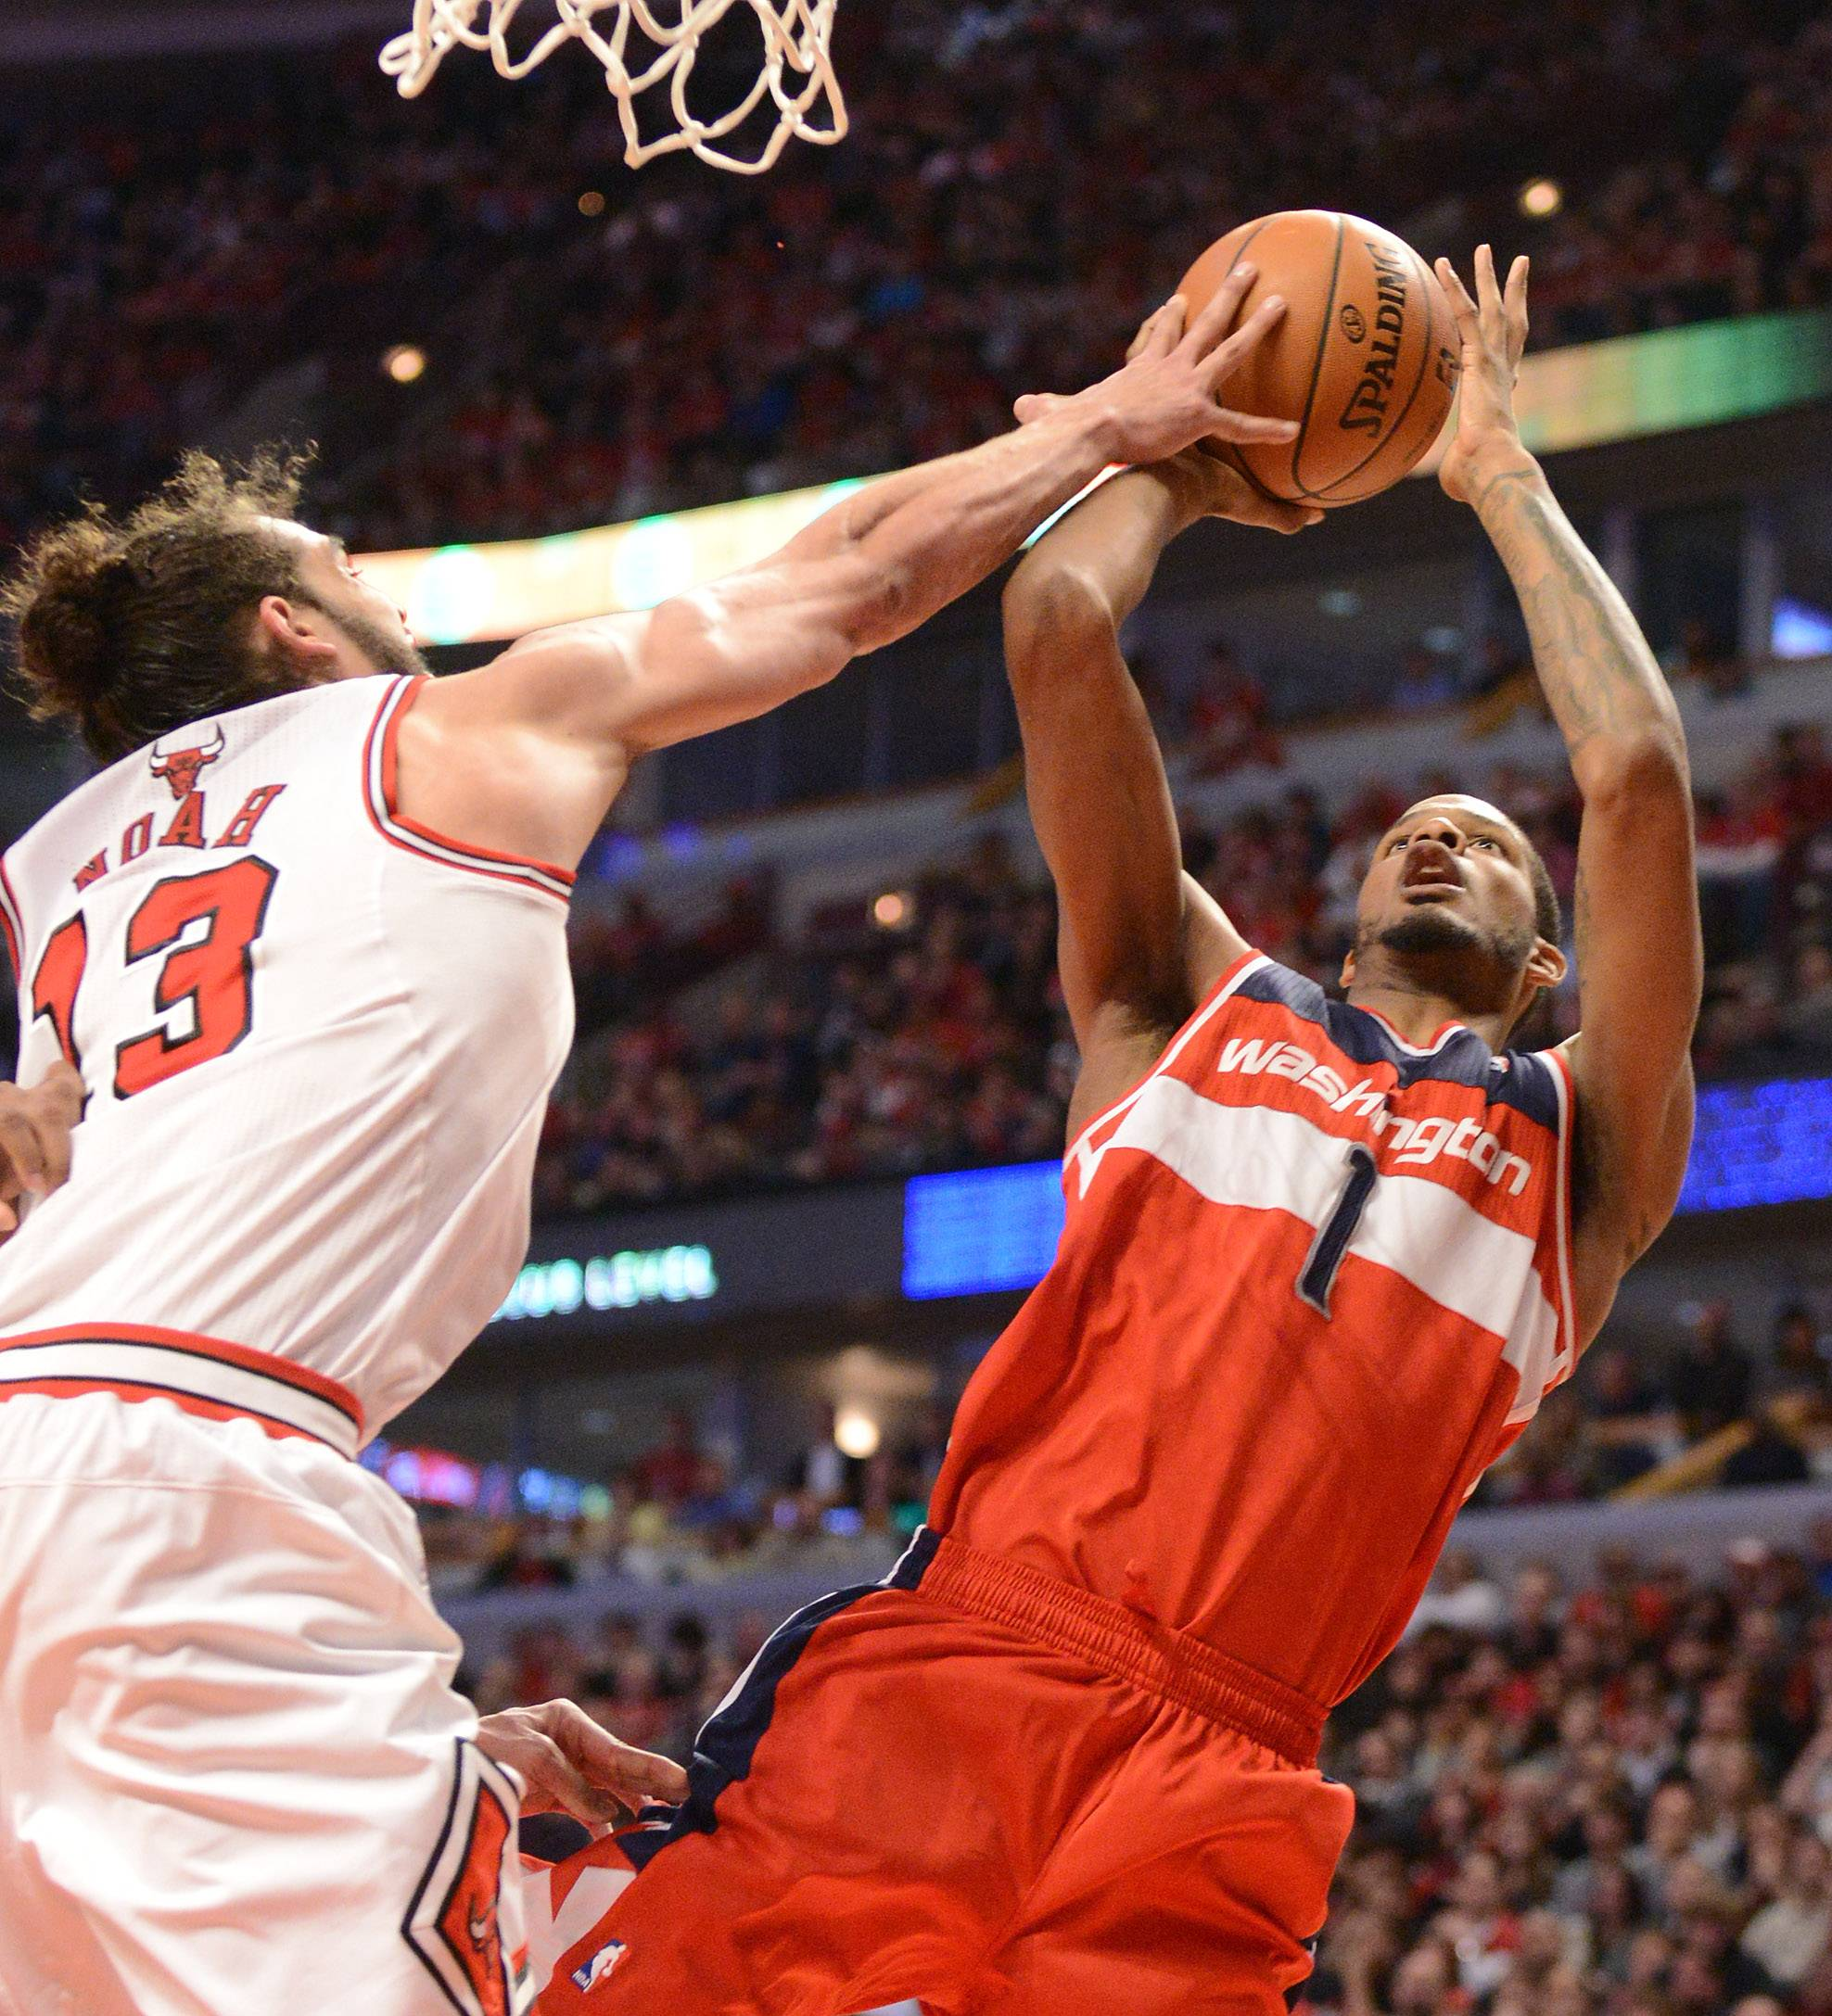 Chicago Bulls center Joakim Noah (13) gets a hand on a shot by Washington Wizards forward Trevor Ariza (1).